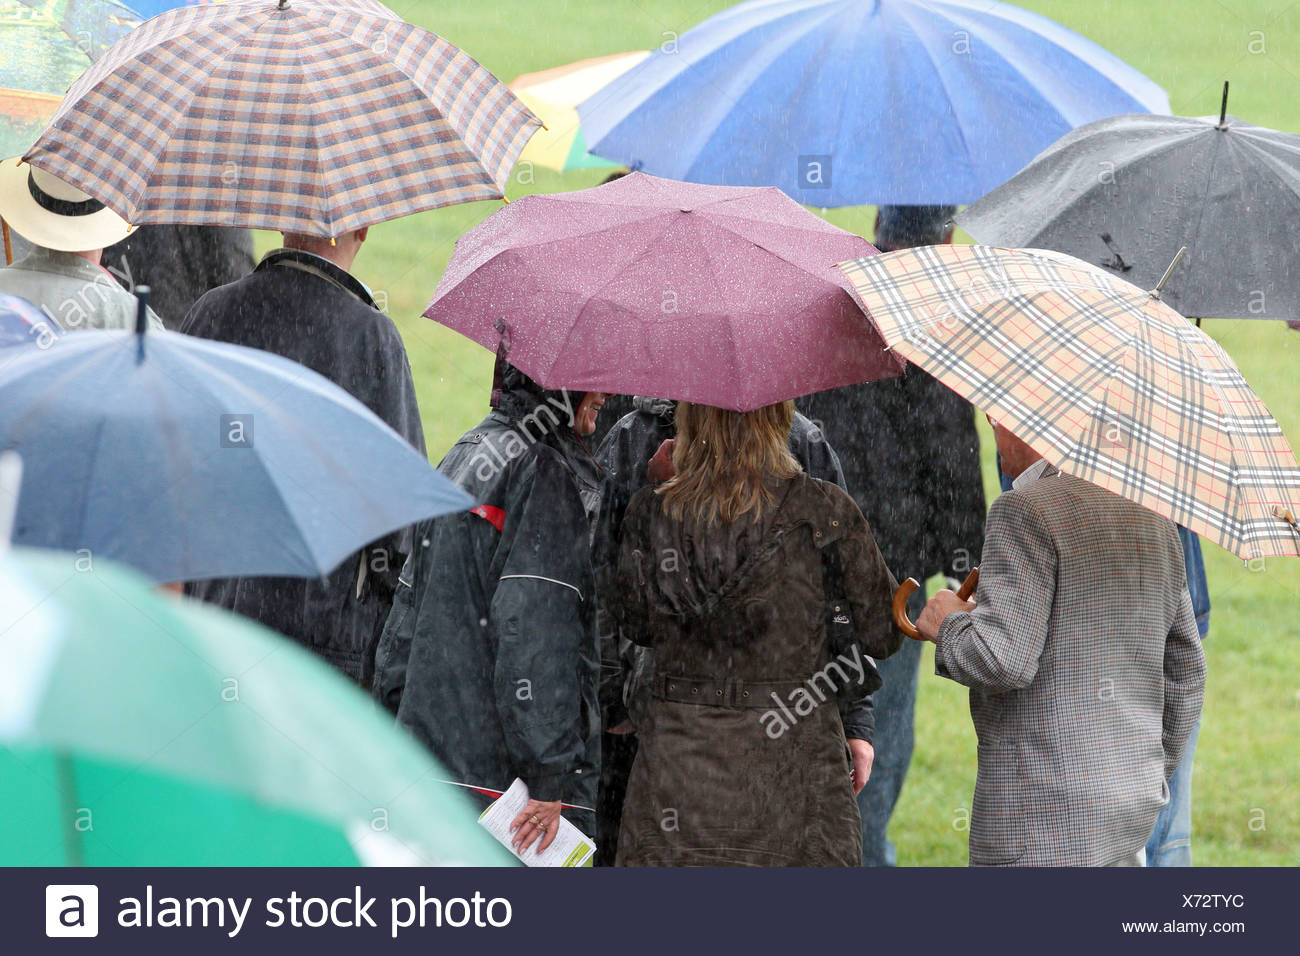 Duesseldorf, Germany, people are in bad weather under their umbrellas - Stock Image